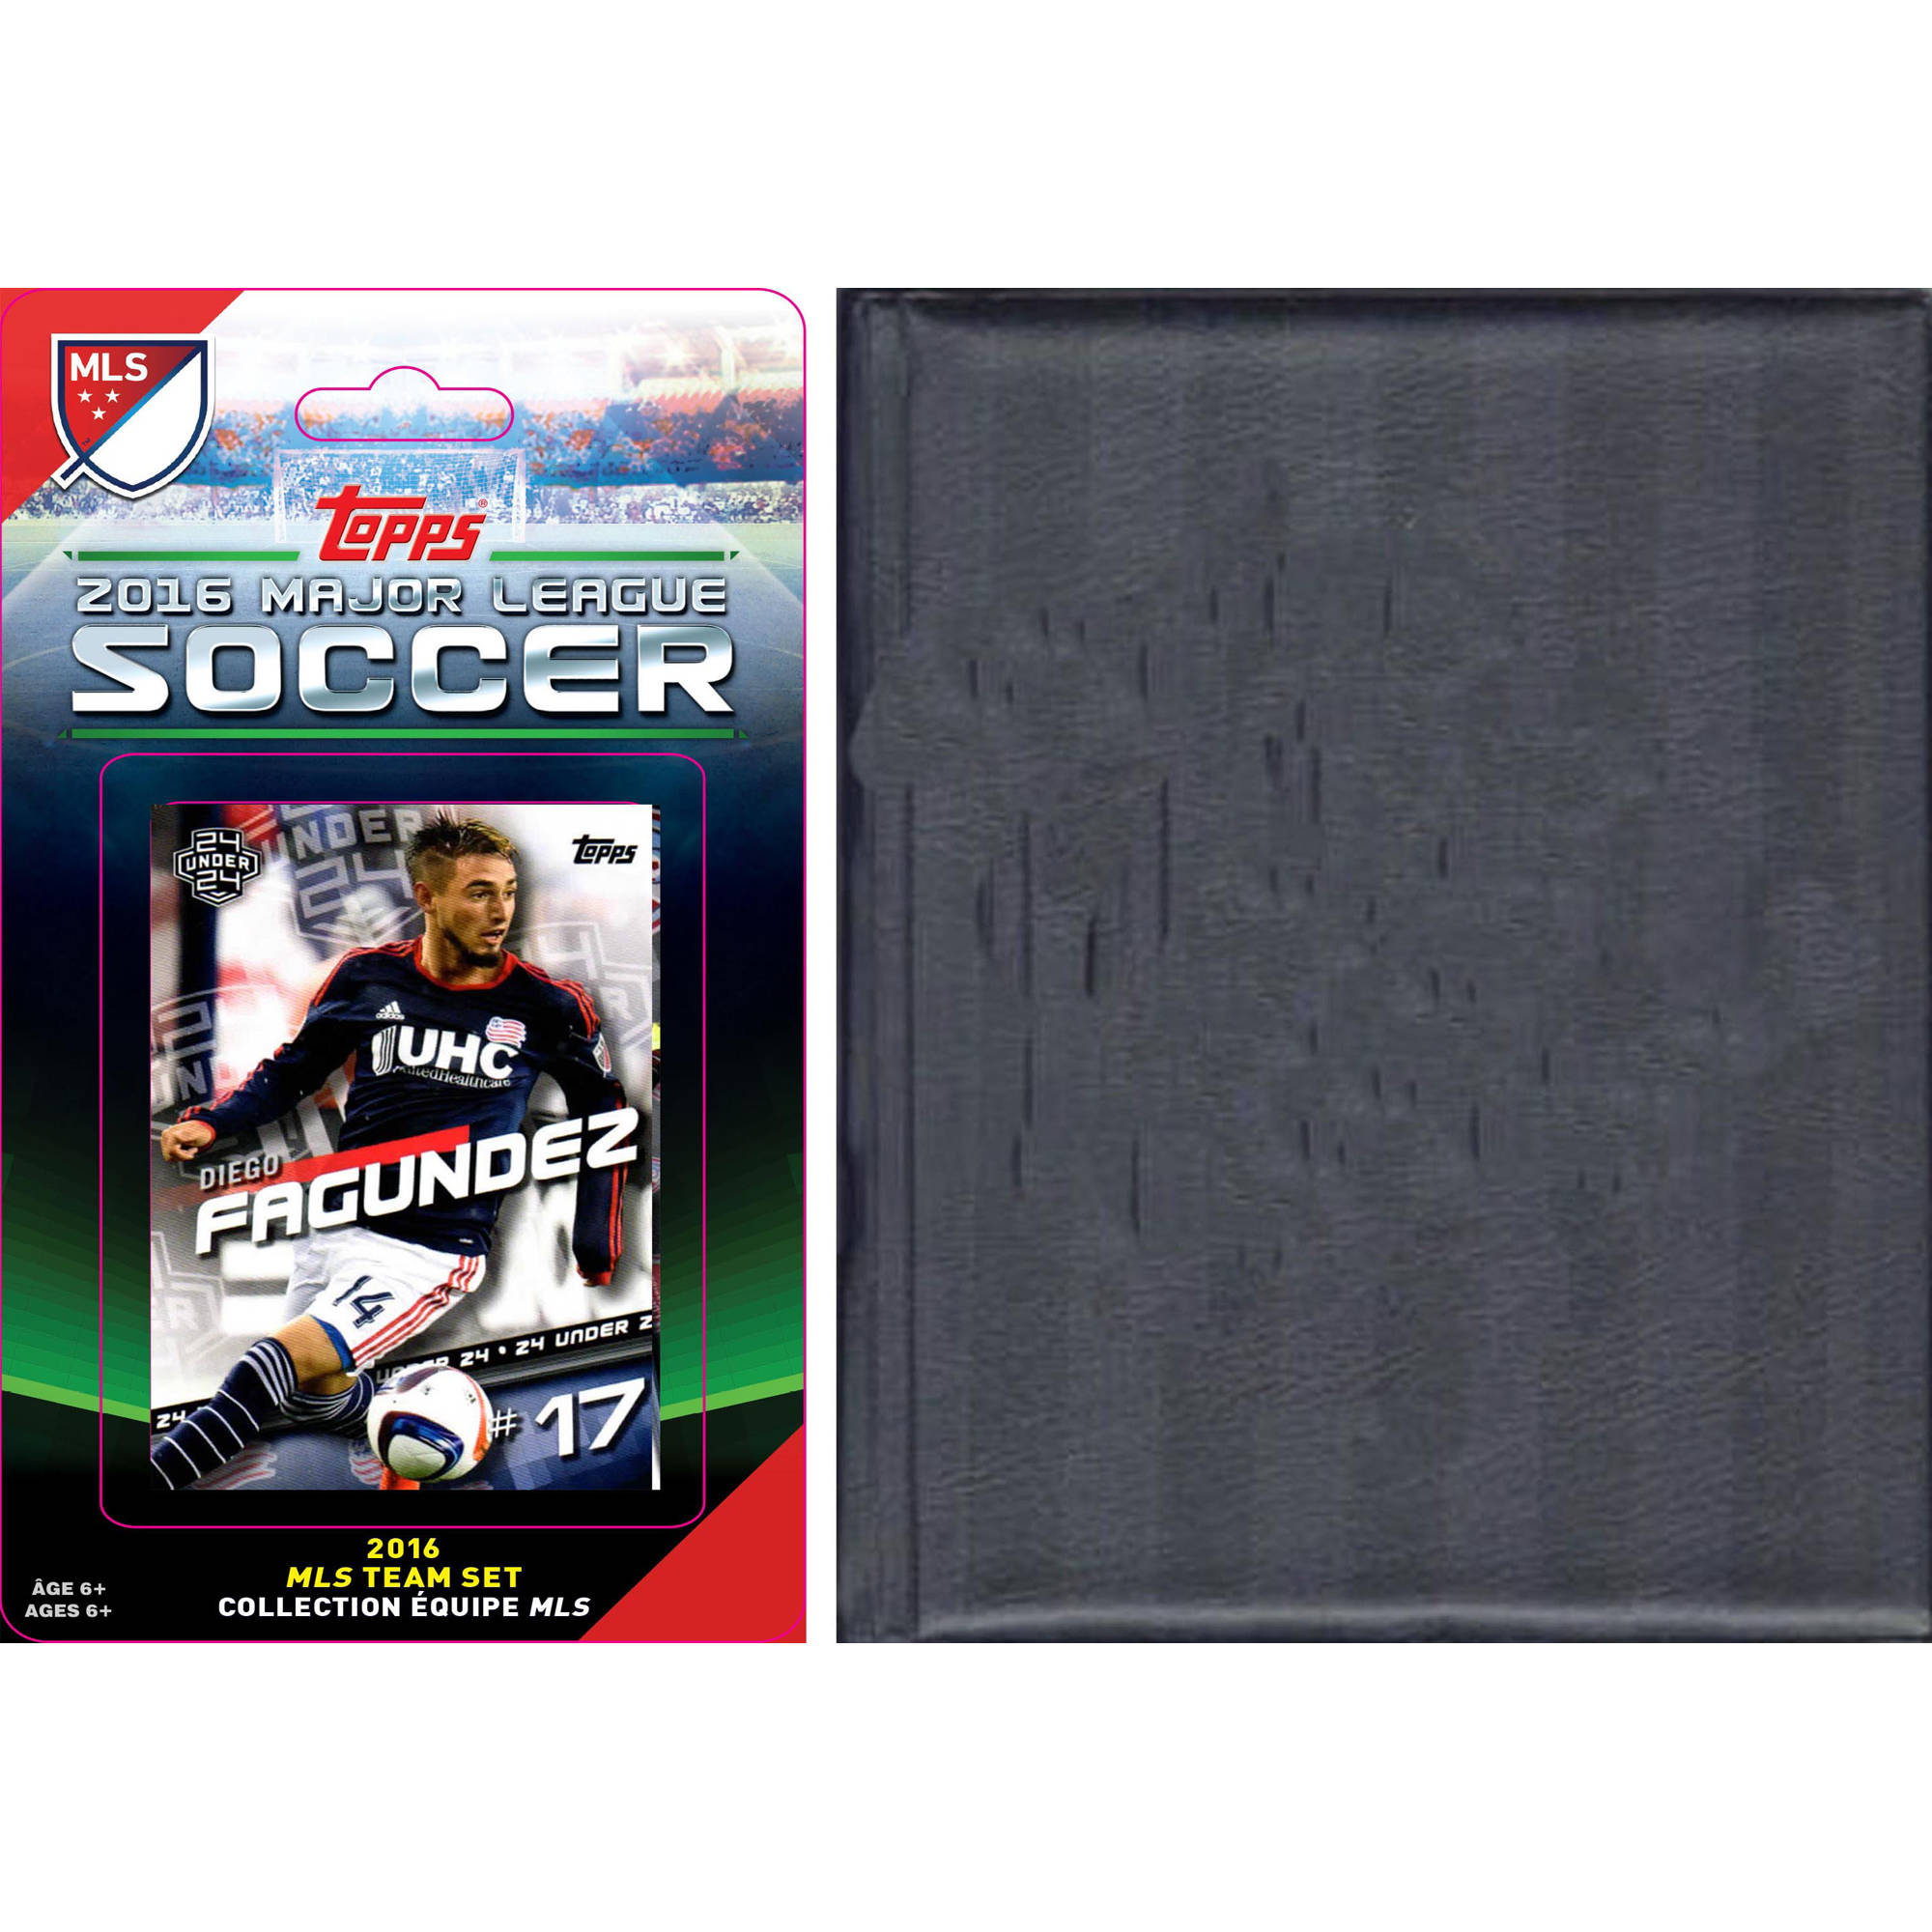 C&I Collectables MLS New England Revolution Licensed 2016 Topps Team Set and Storage Album